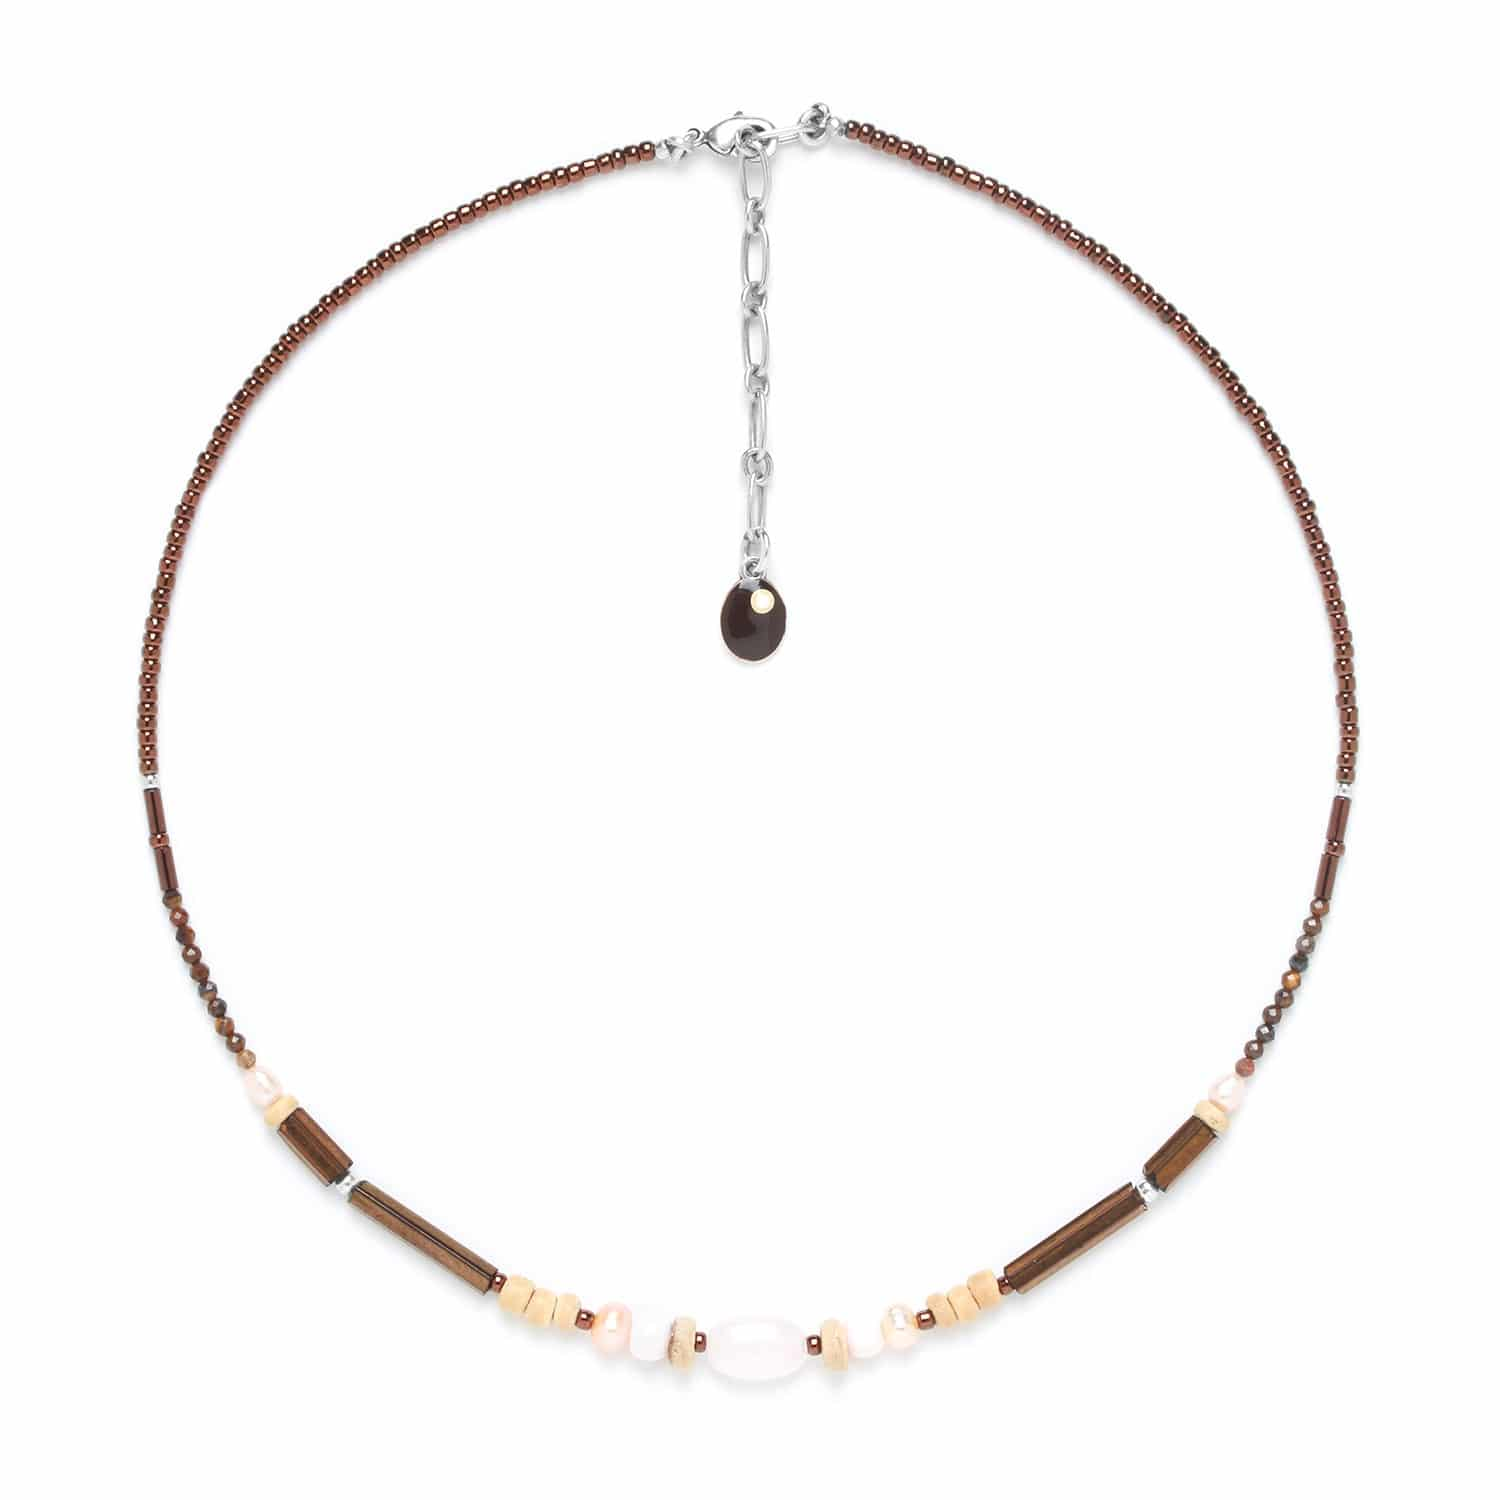 TERRE DOUCE small necklace